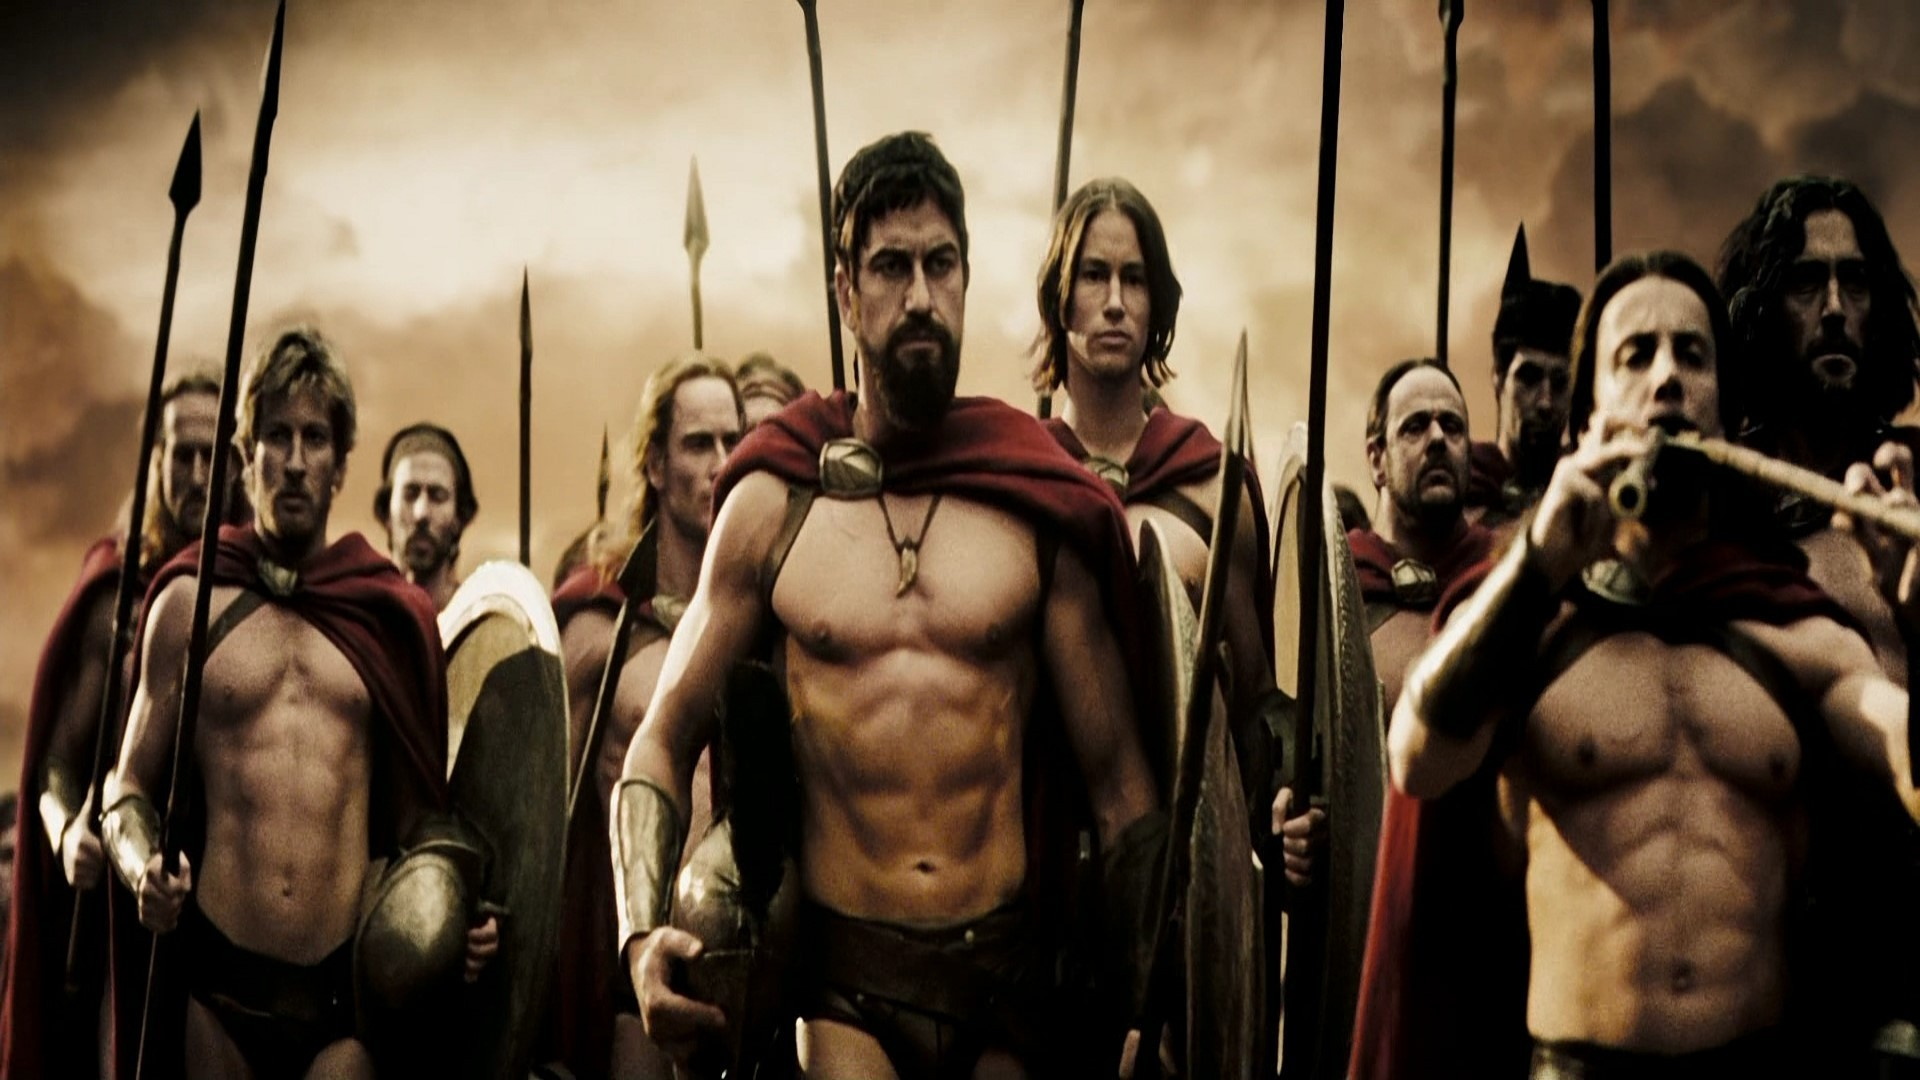 300 rise of the empire full movie free